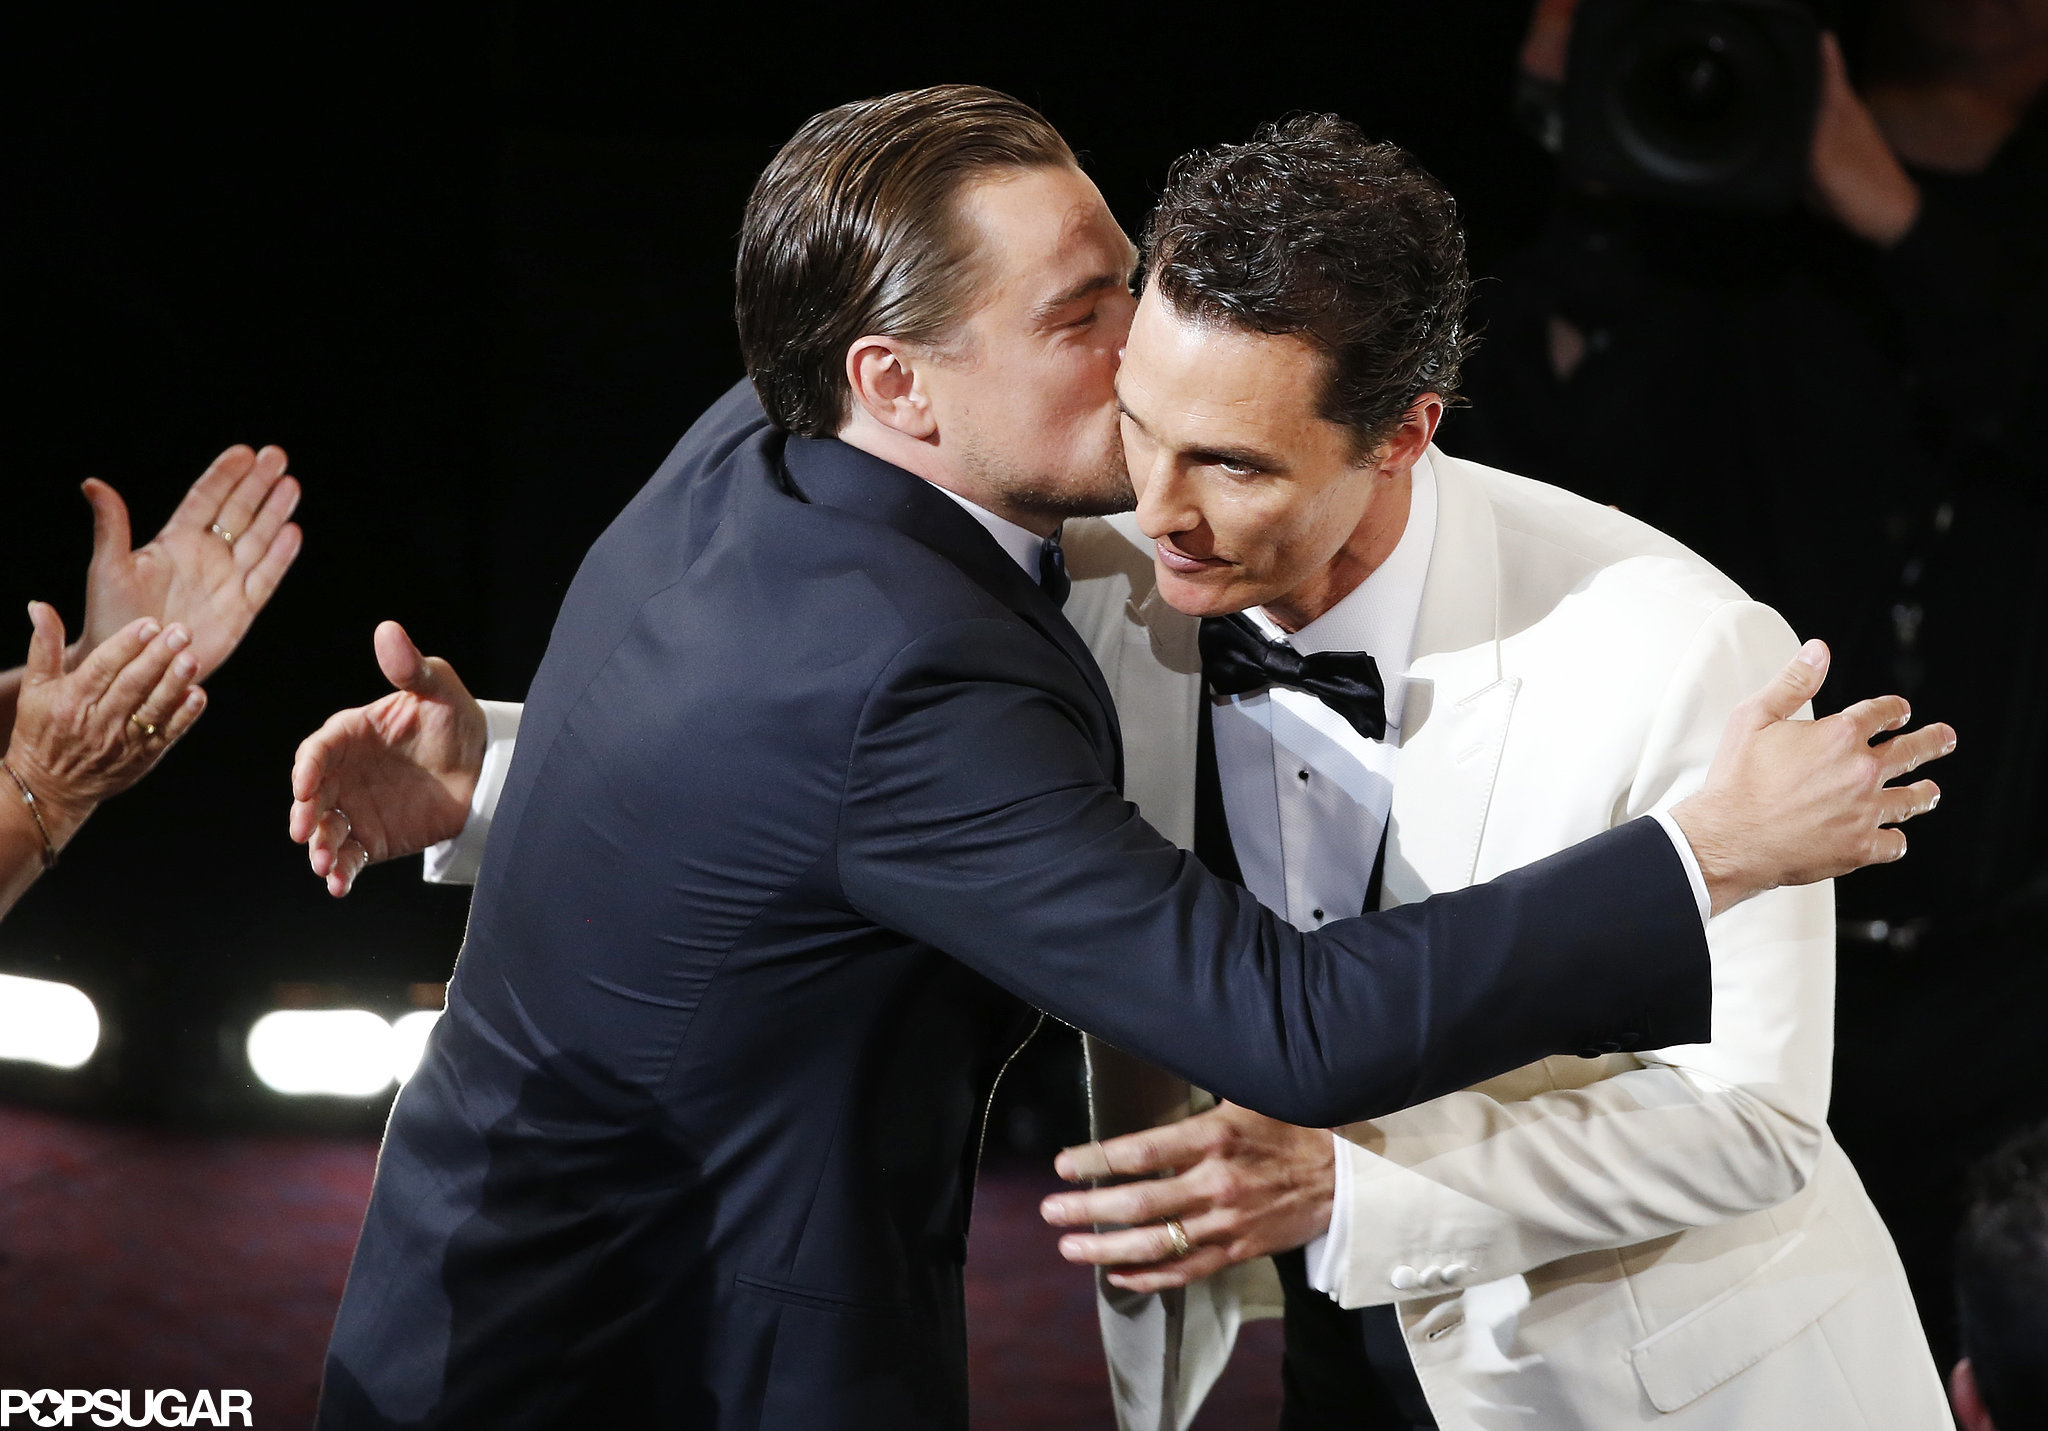 Fellow nominee Leonardo DiCaprio congratulated Matthew McConaughey on his best